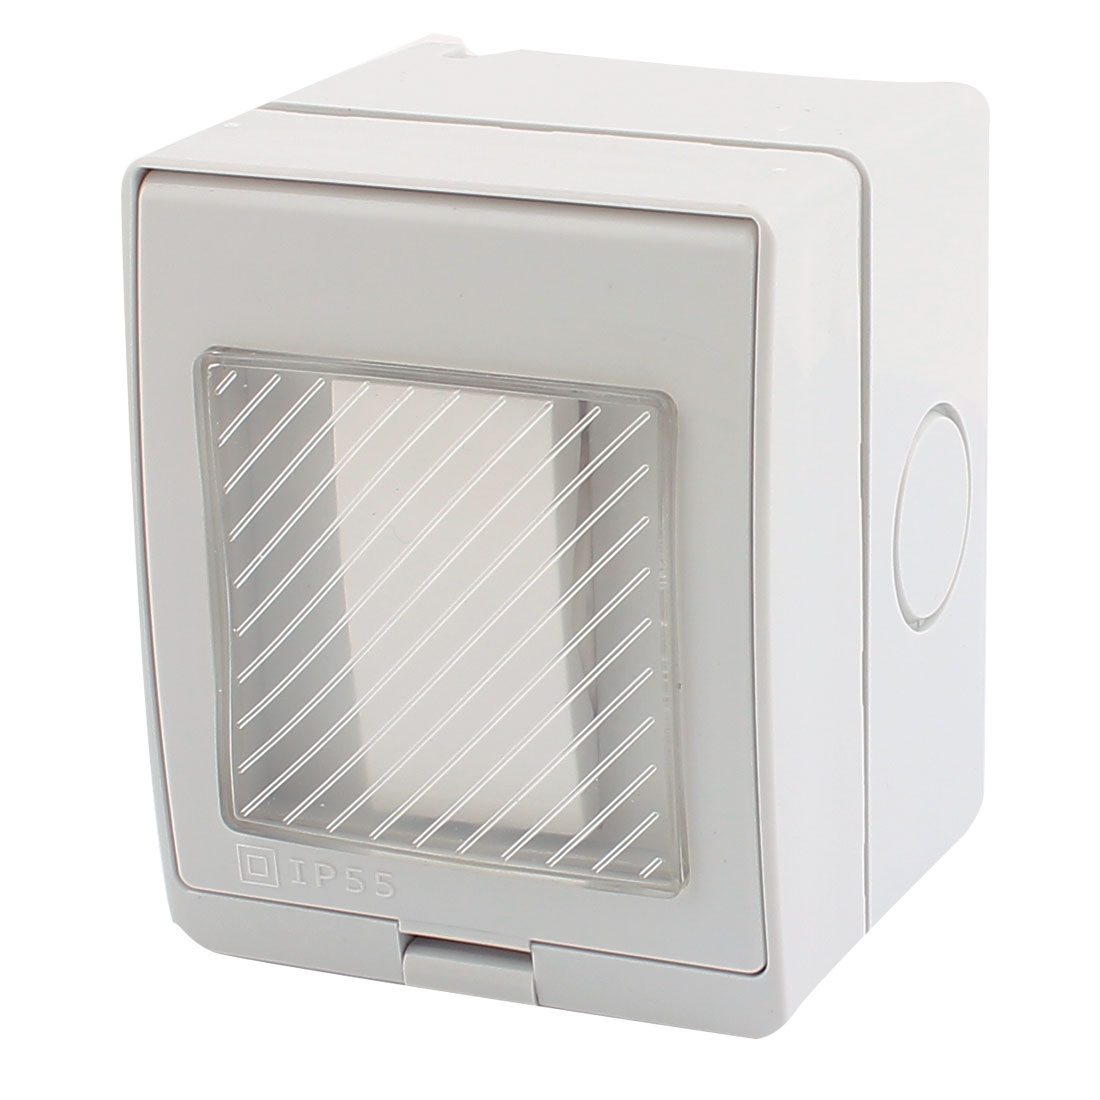 AC 110V-250V 20A Waterproof 1 Gang 2 Way On/Off Switch Wall Plate 86mmx70mmx65mm